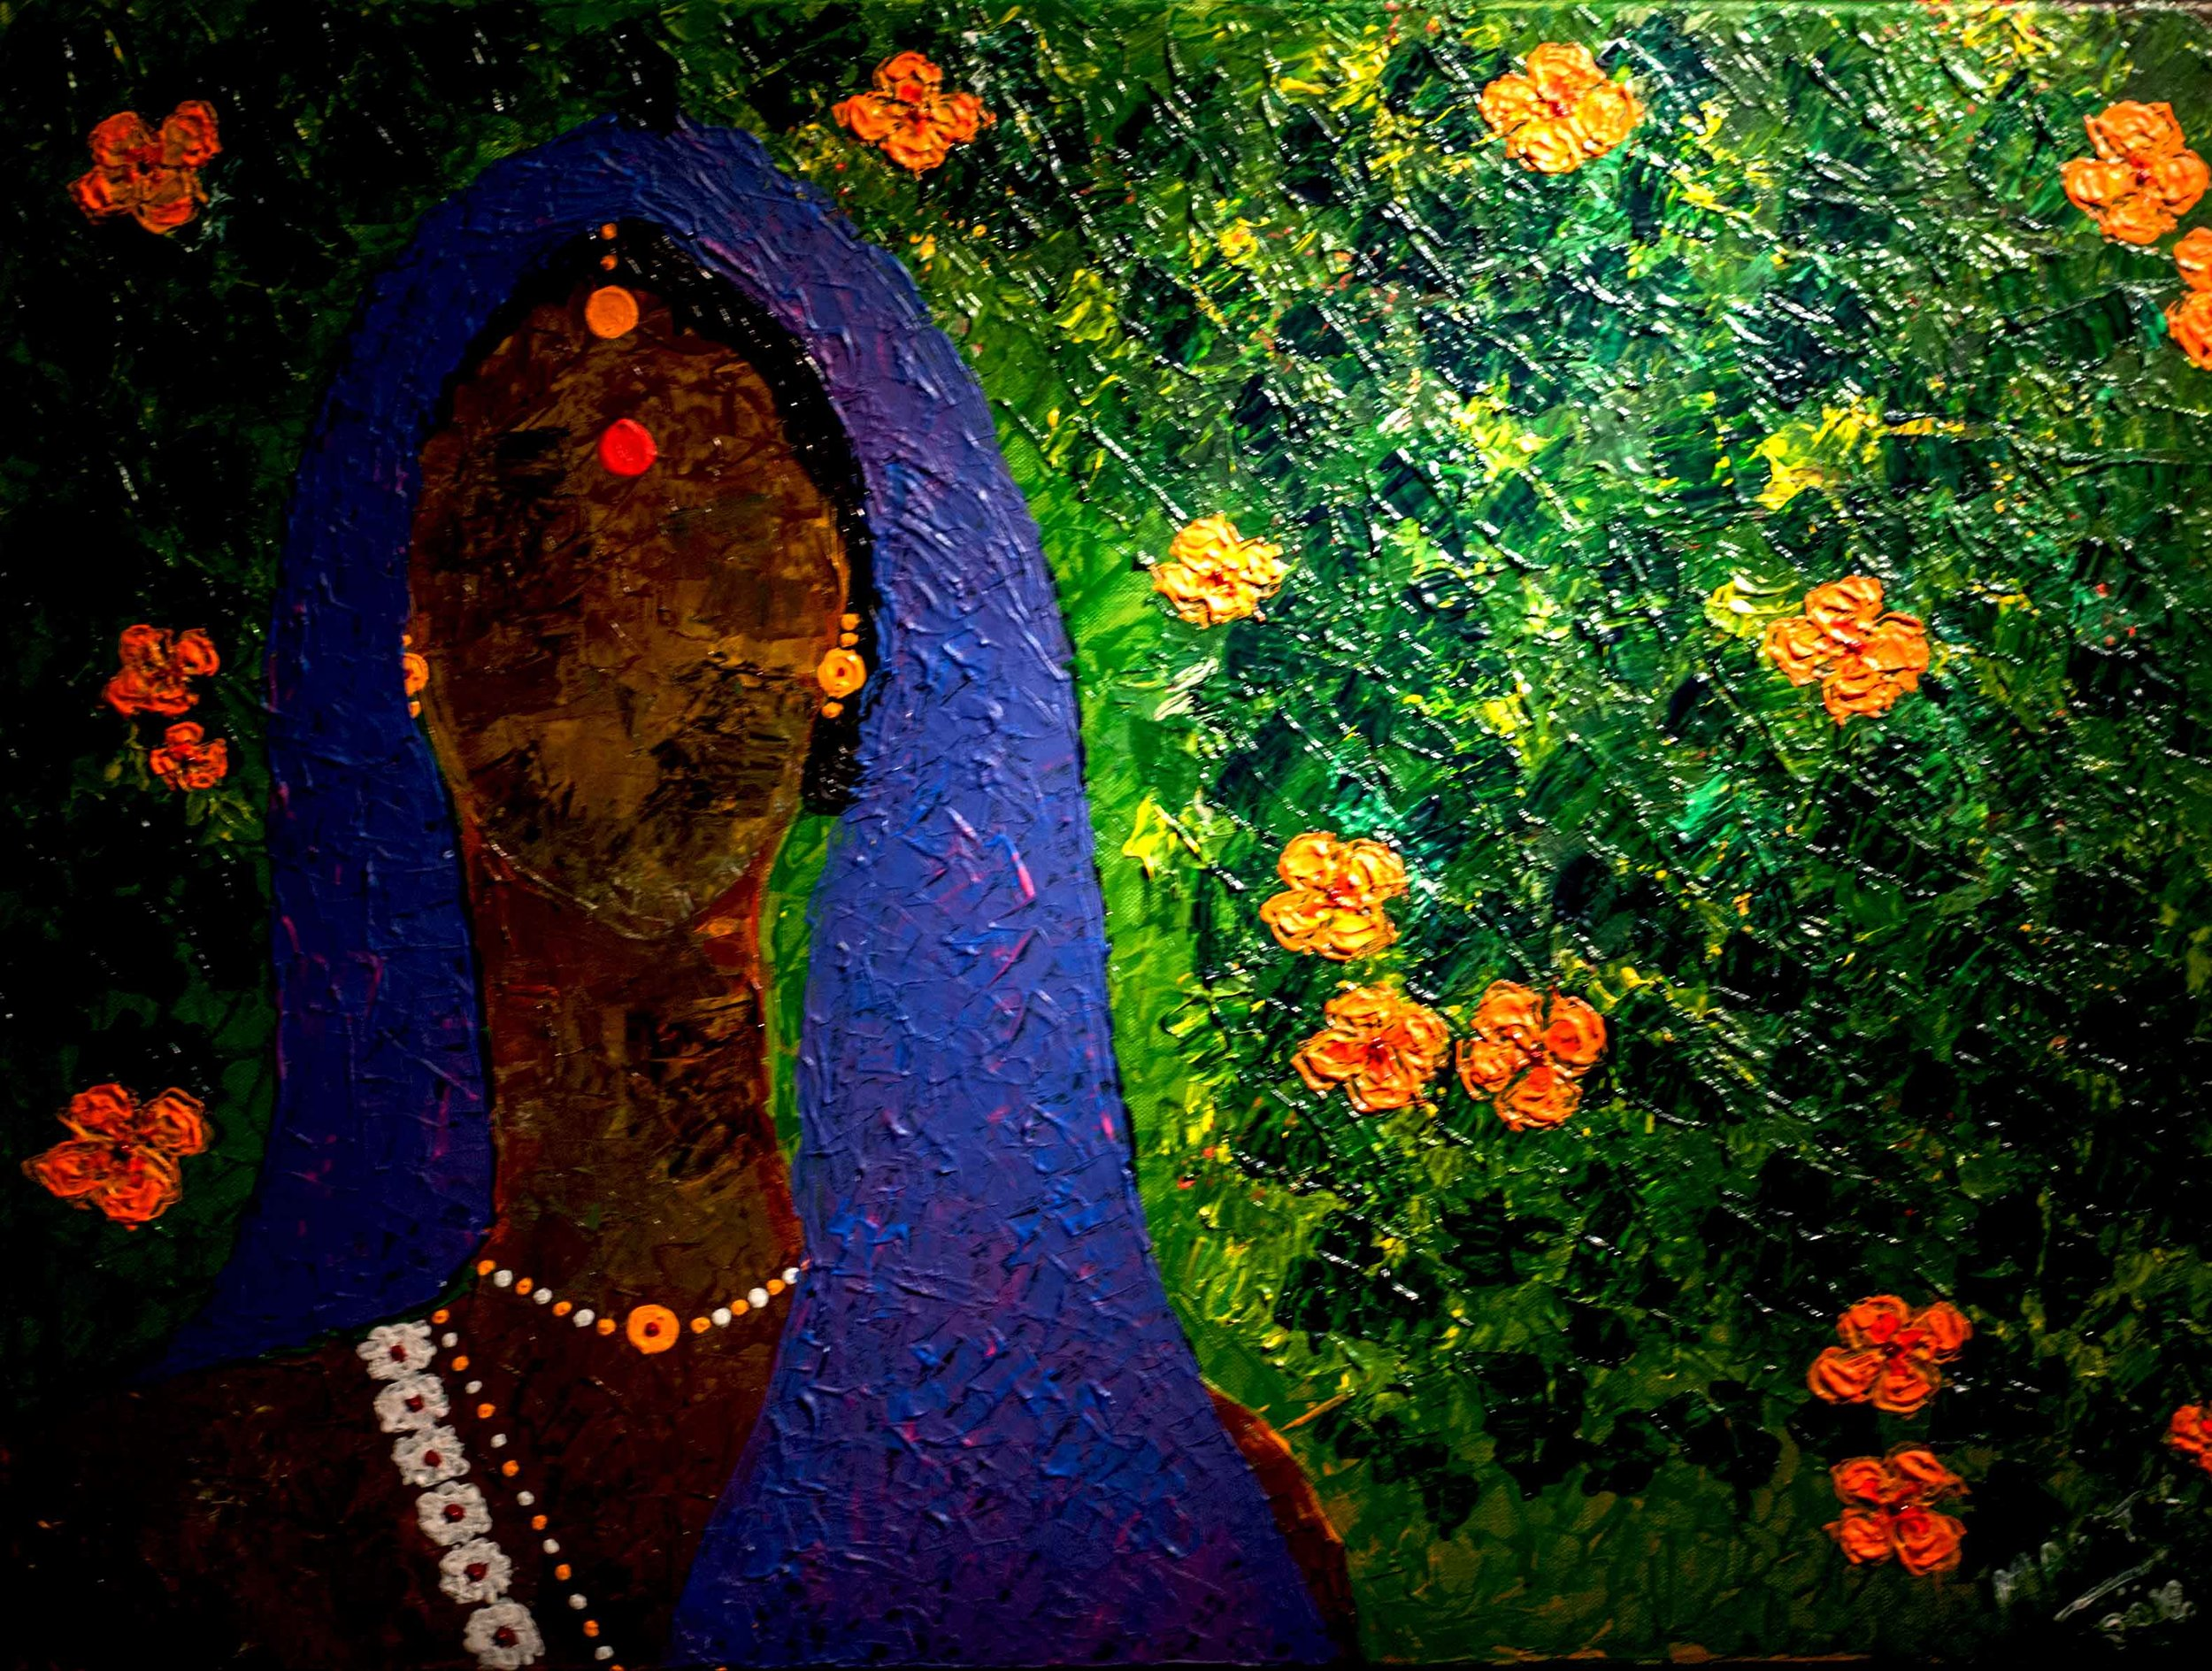 Married Woman, 2018, Mamta Chitnis Sen